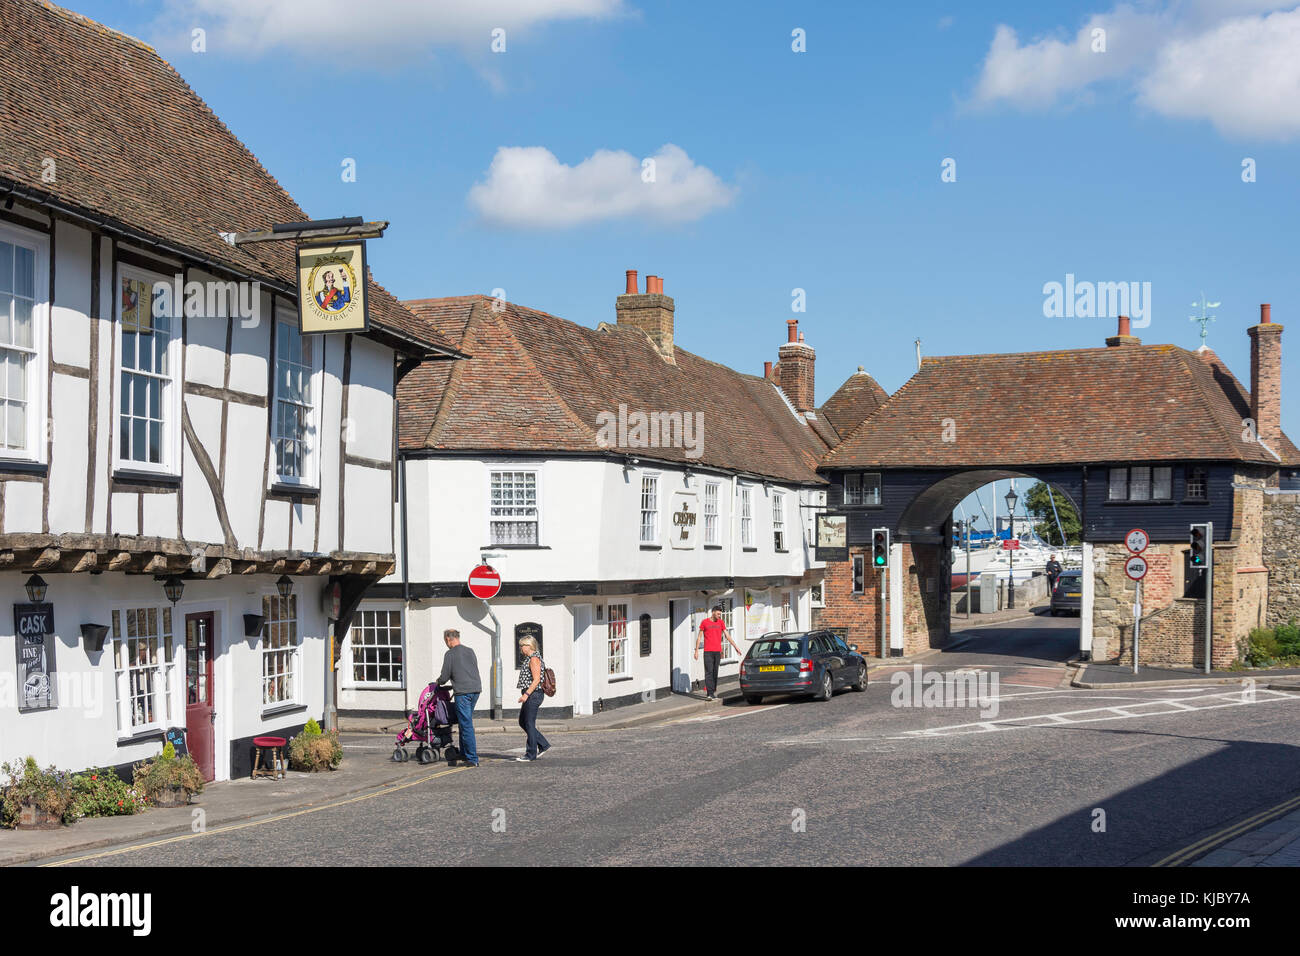 15th Century The Admiral Owen Pub and The Crispen Inn, High Street, Sandwich, Kent, England, United Kingdom - Stock Image